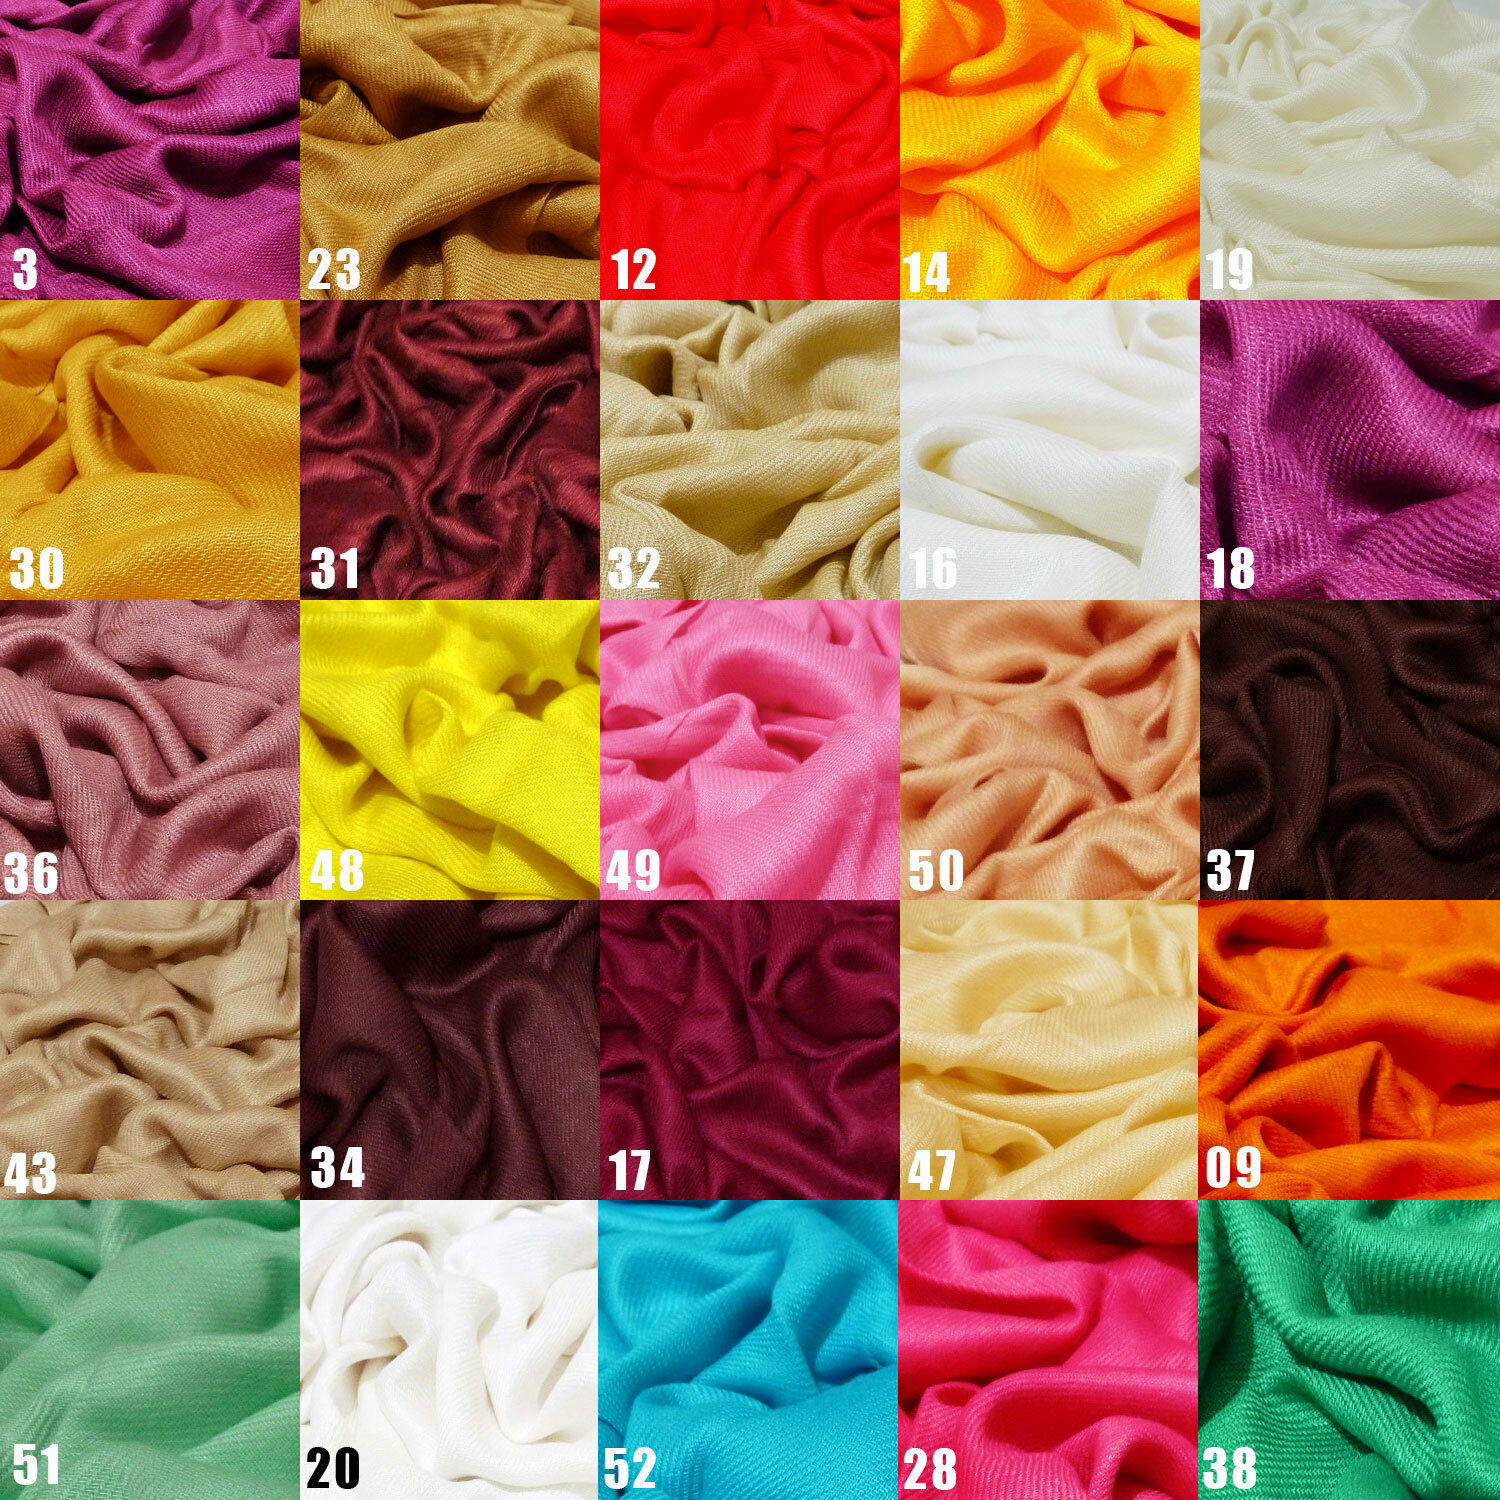 c631af439 Details about 100% Viscose Plain Pashmina Scarf Stole Wrap Shawl High  Quality Many Colours